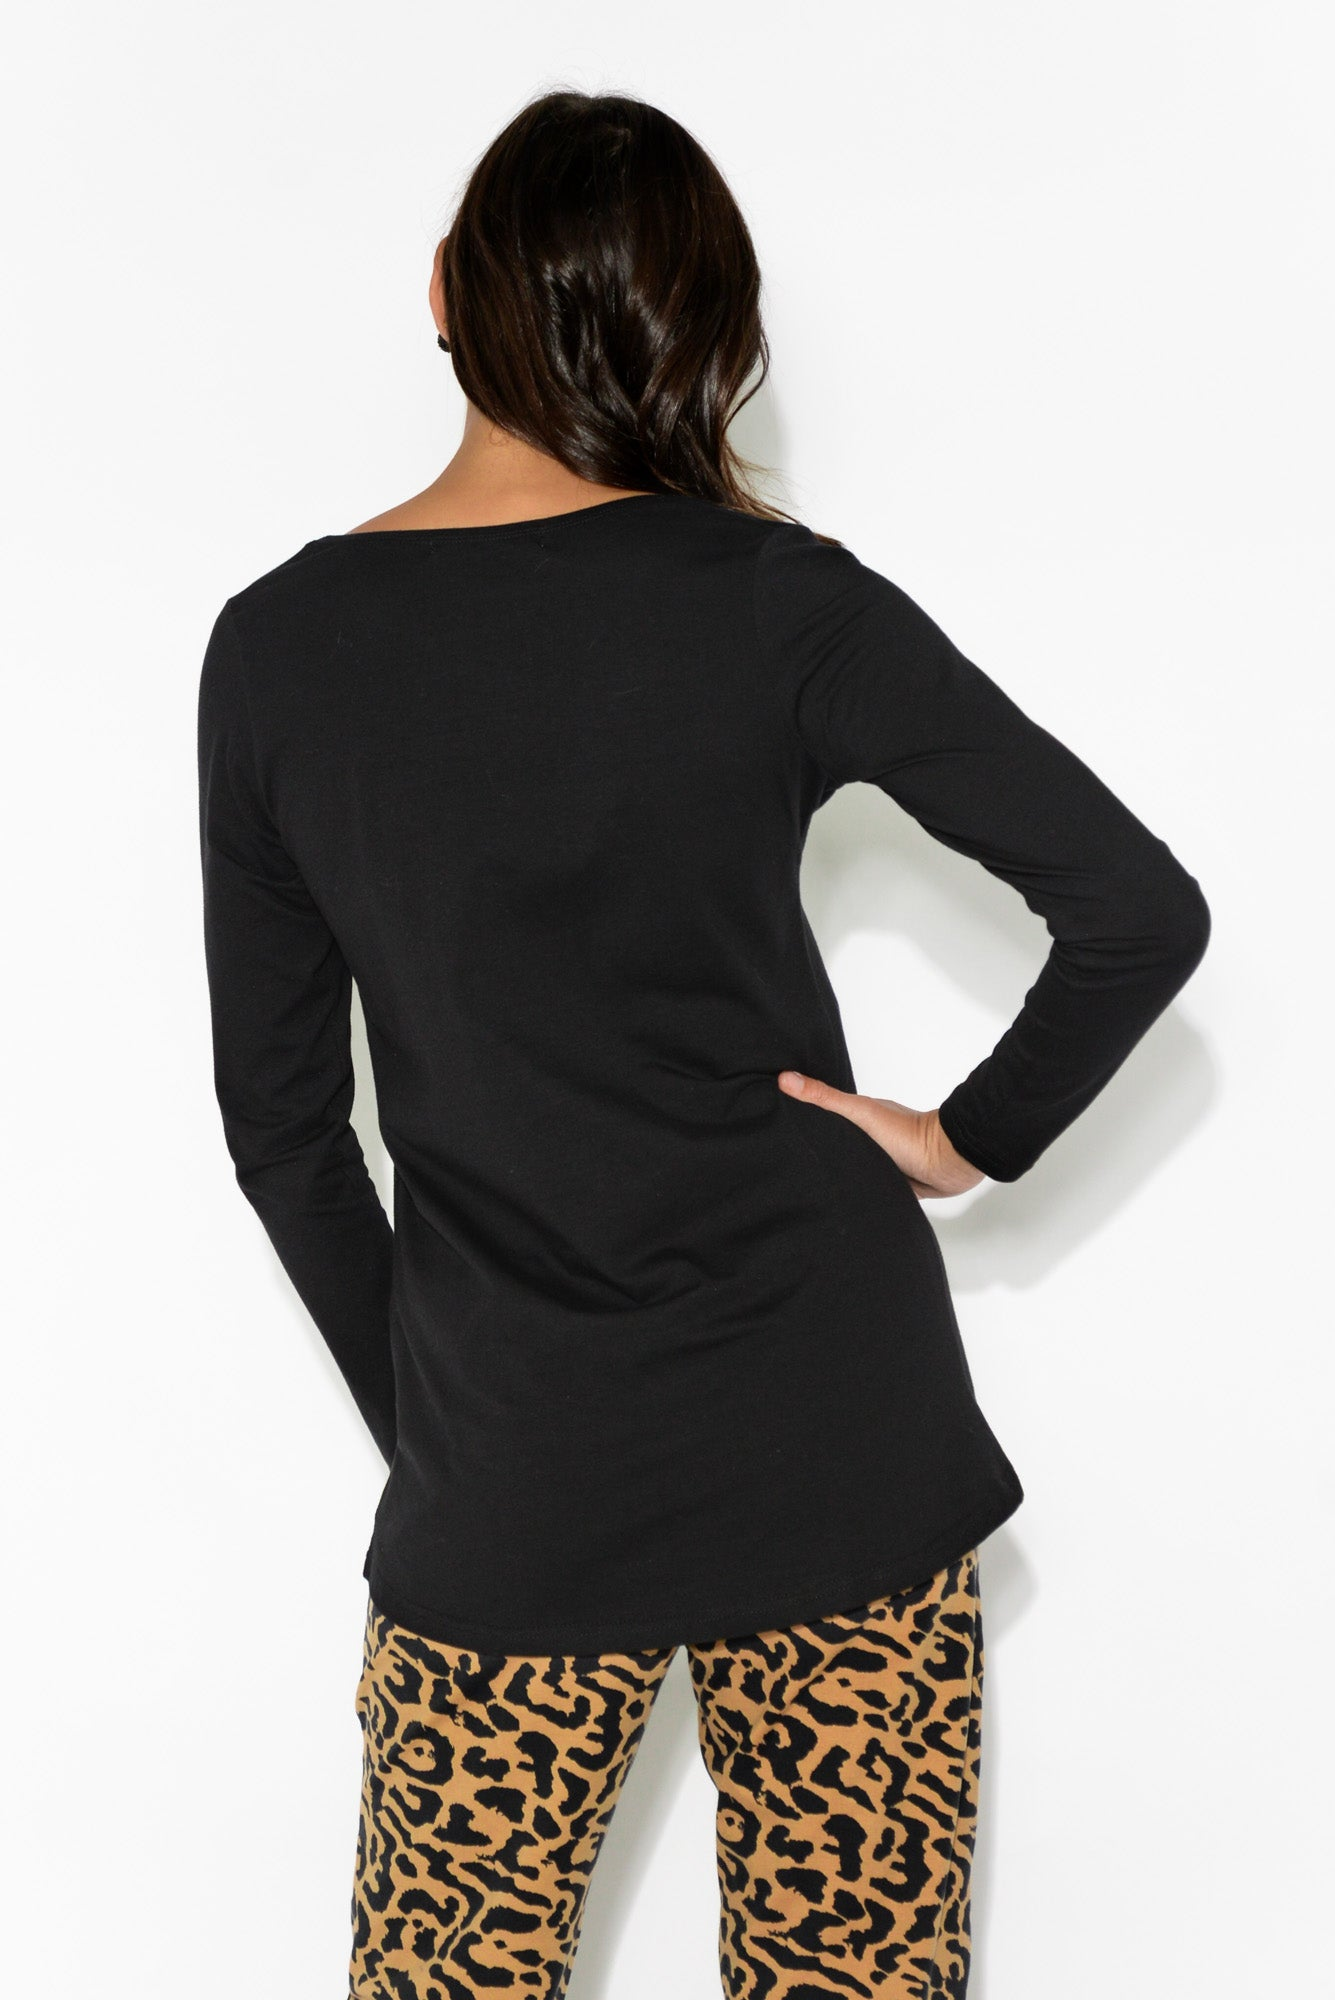 Shania Black Curved Hem Top